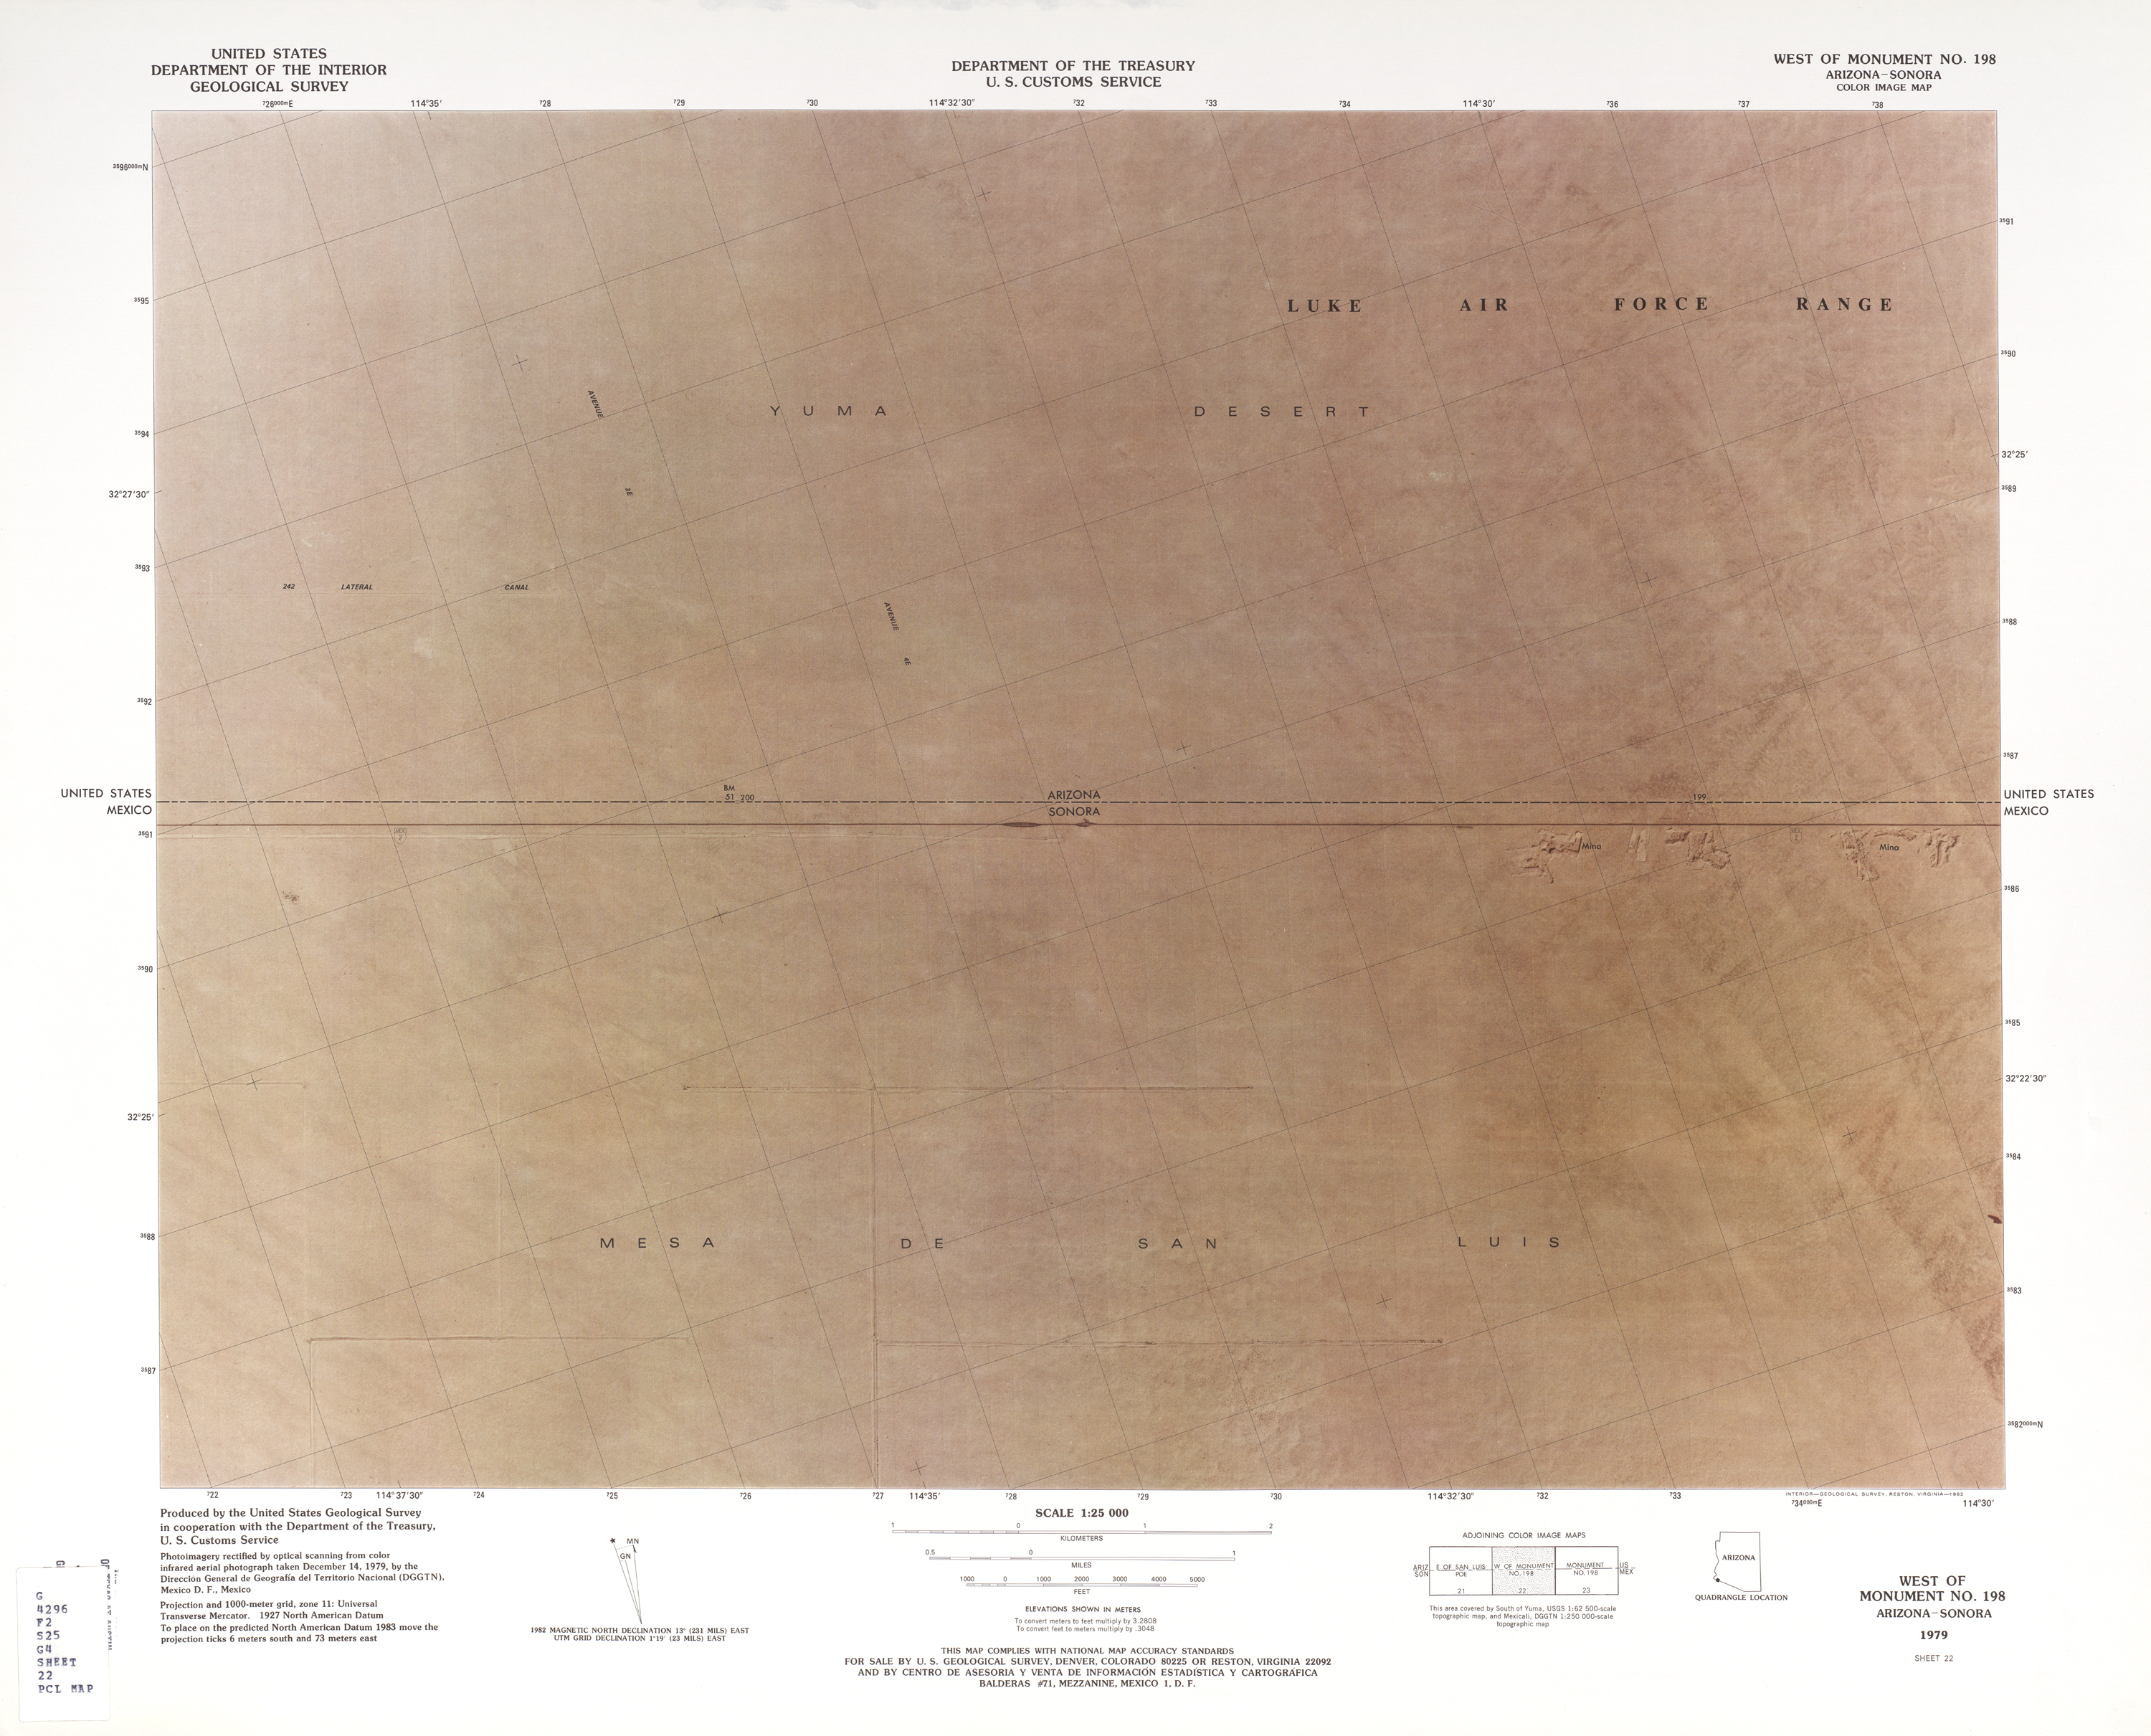 United States-Mexico Border Map, West of Monument No. 198